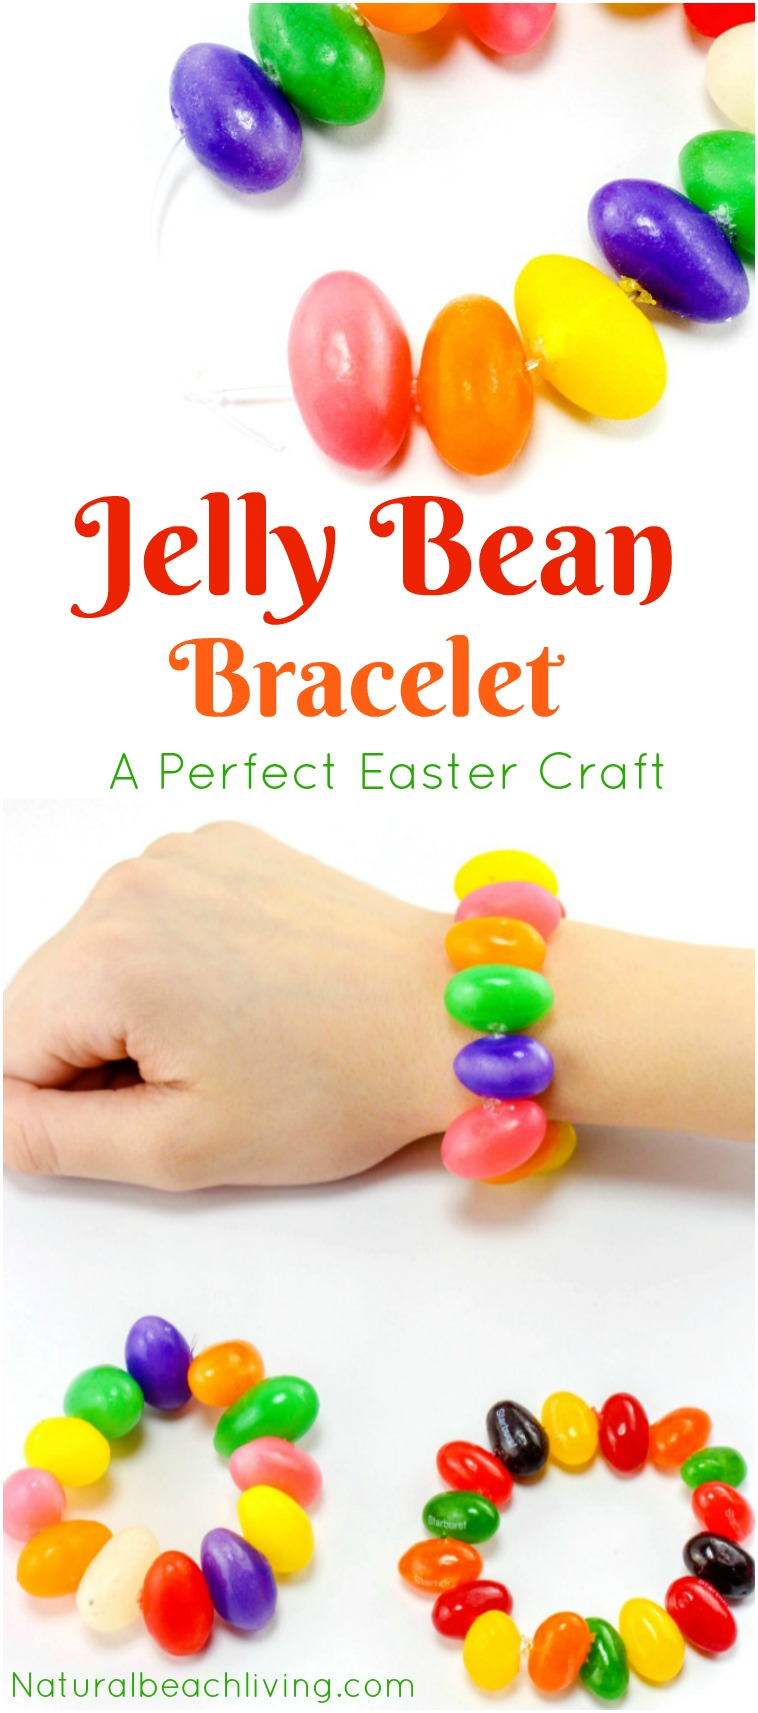 graphic about Jelly Bean Prayer Printable named Adorable Jelly Bean Crafts Bracelet for Easter (No cost Prayer